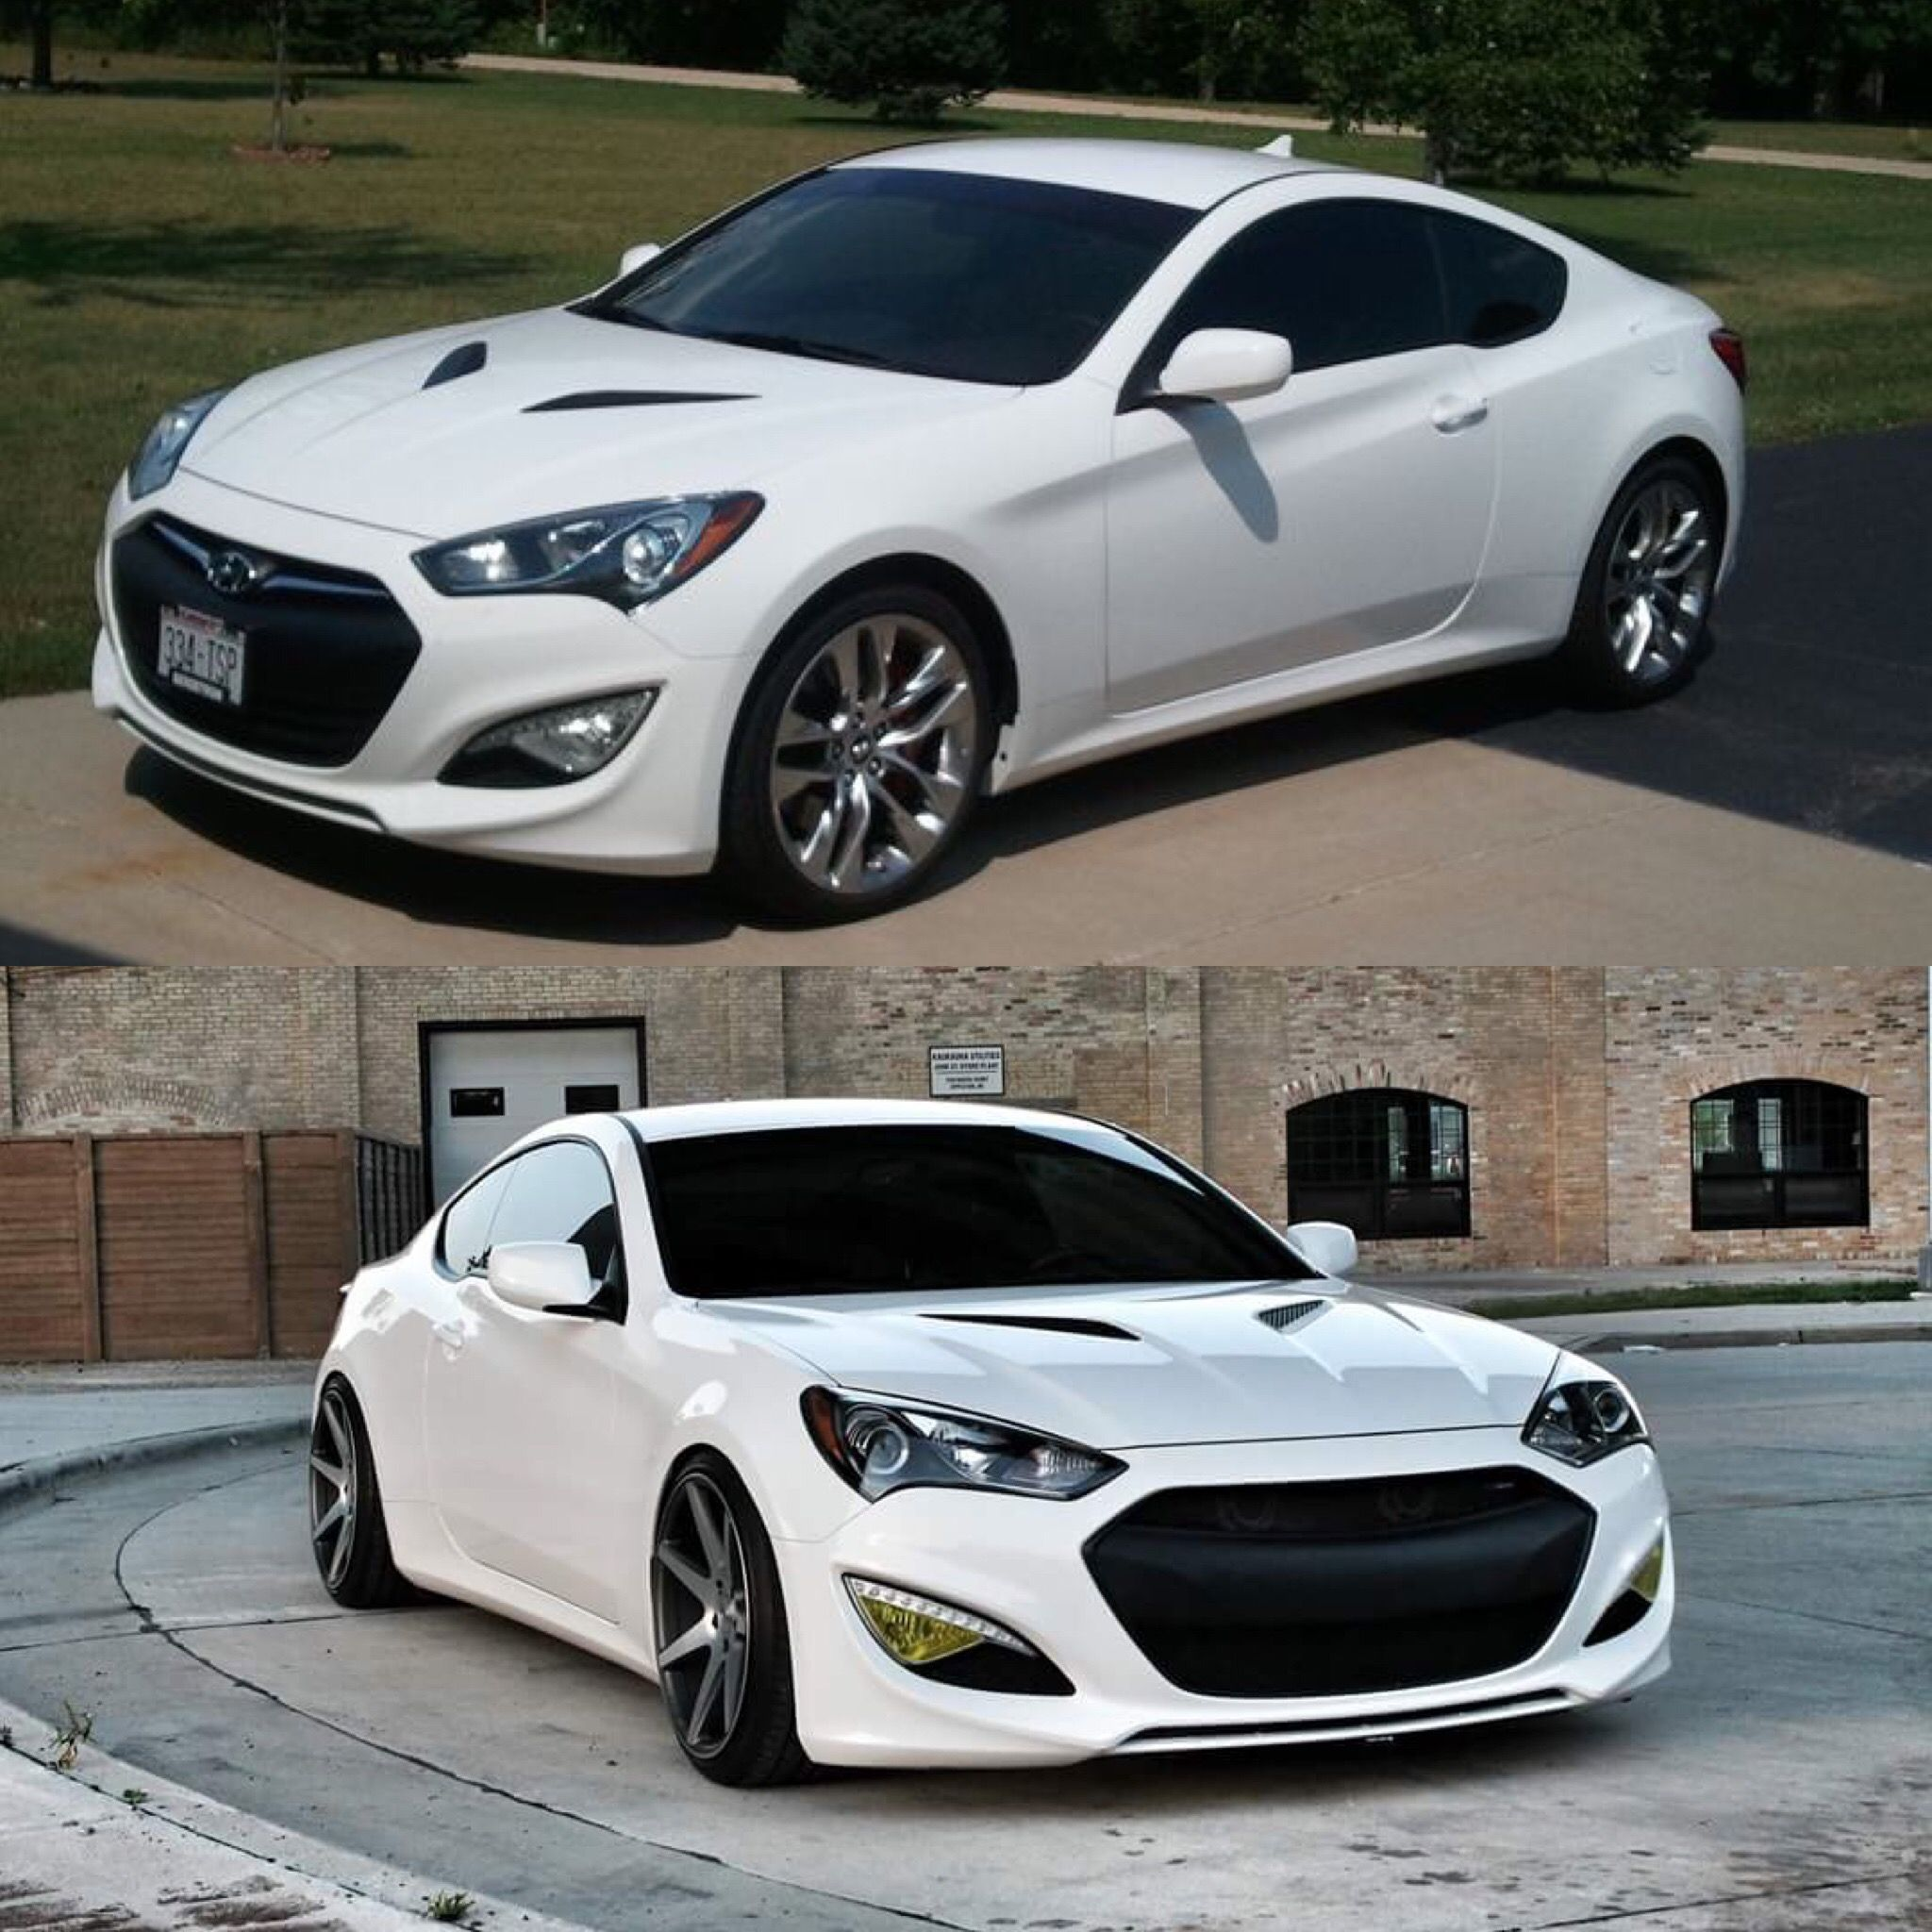 My Mans2017 Hyundai Genesis Coupe 3 8 Rspec Before And After More